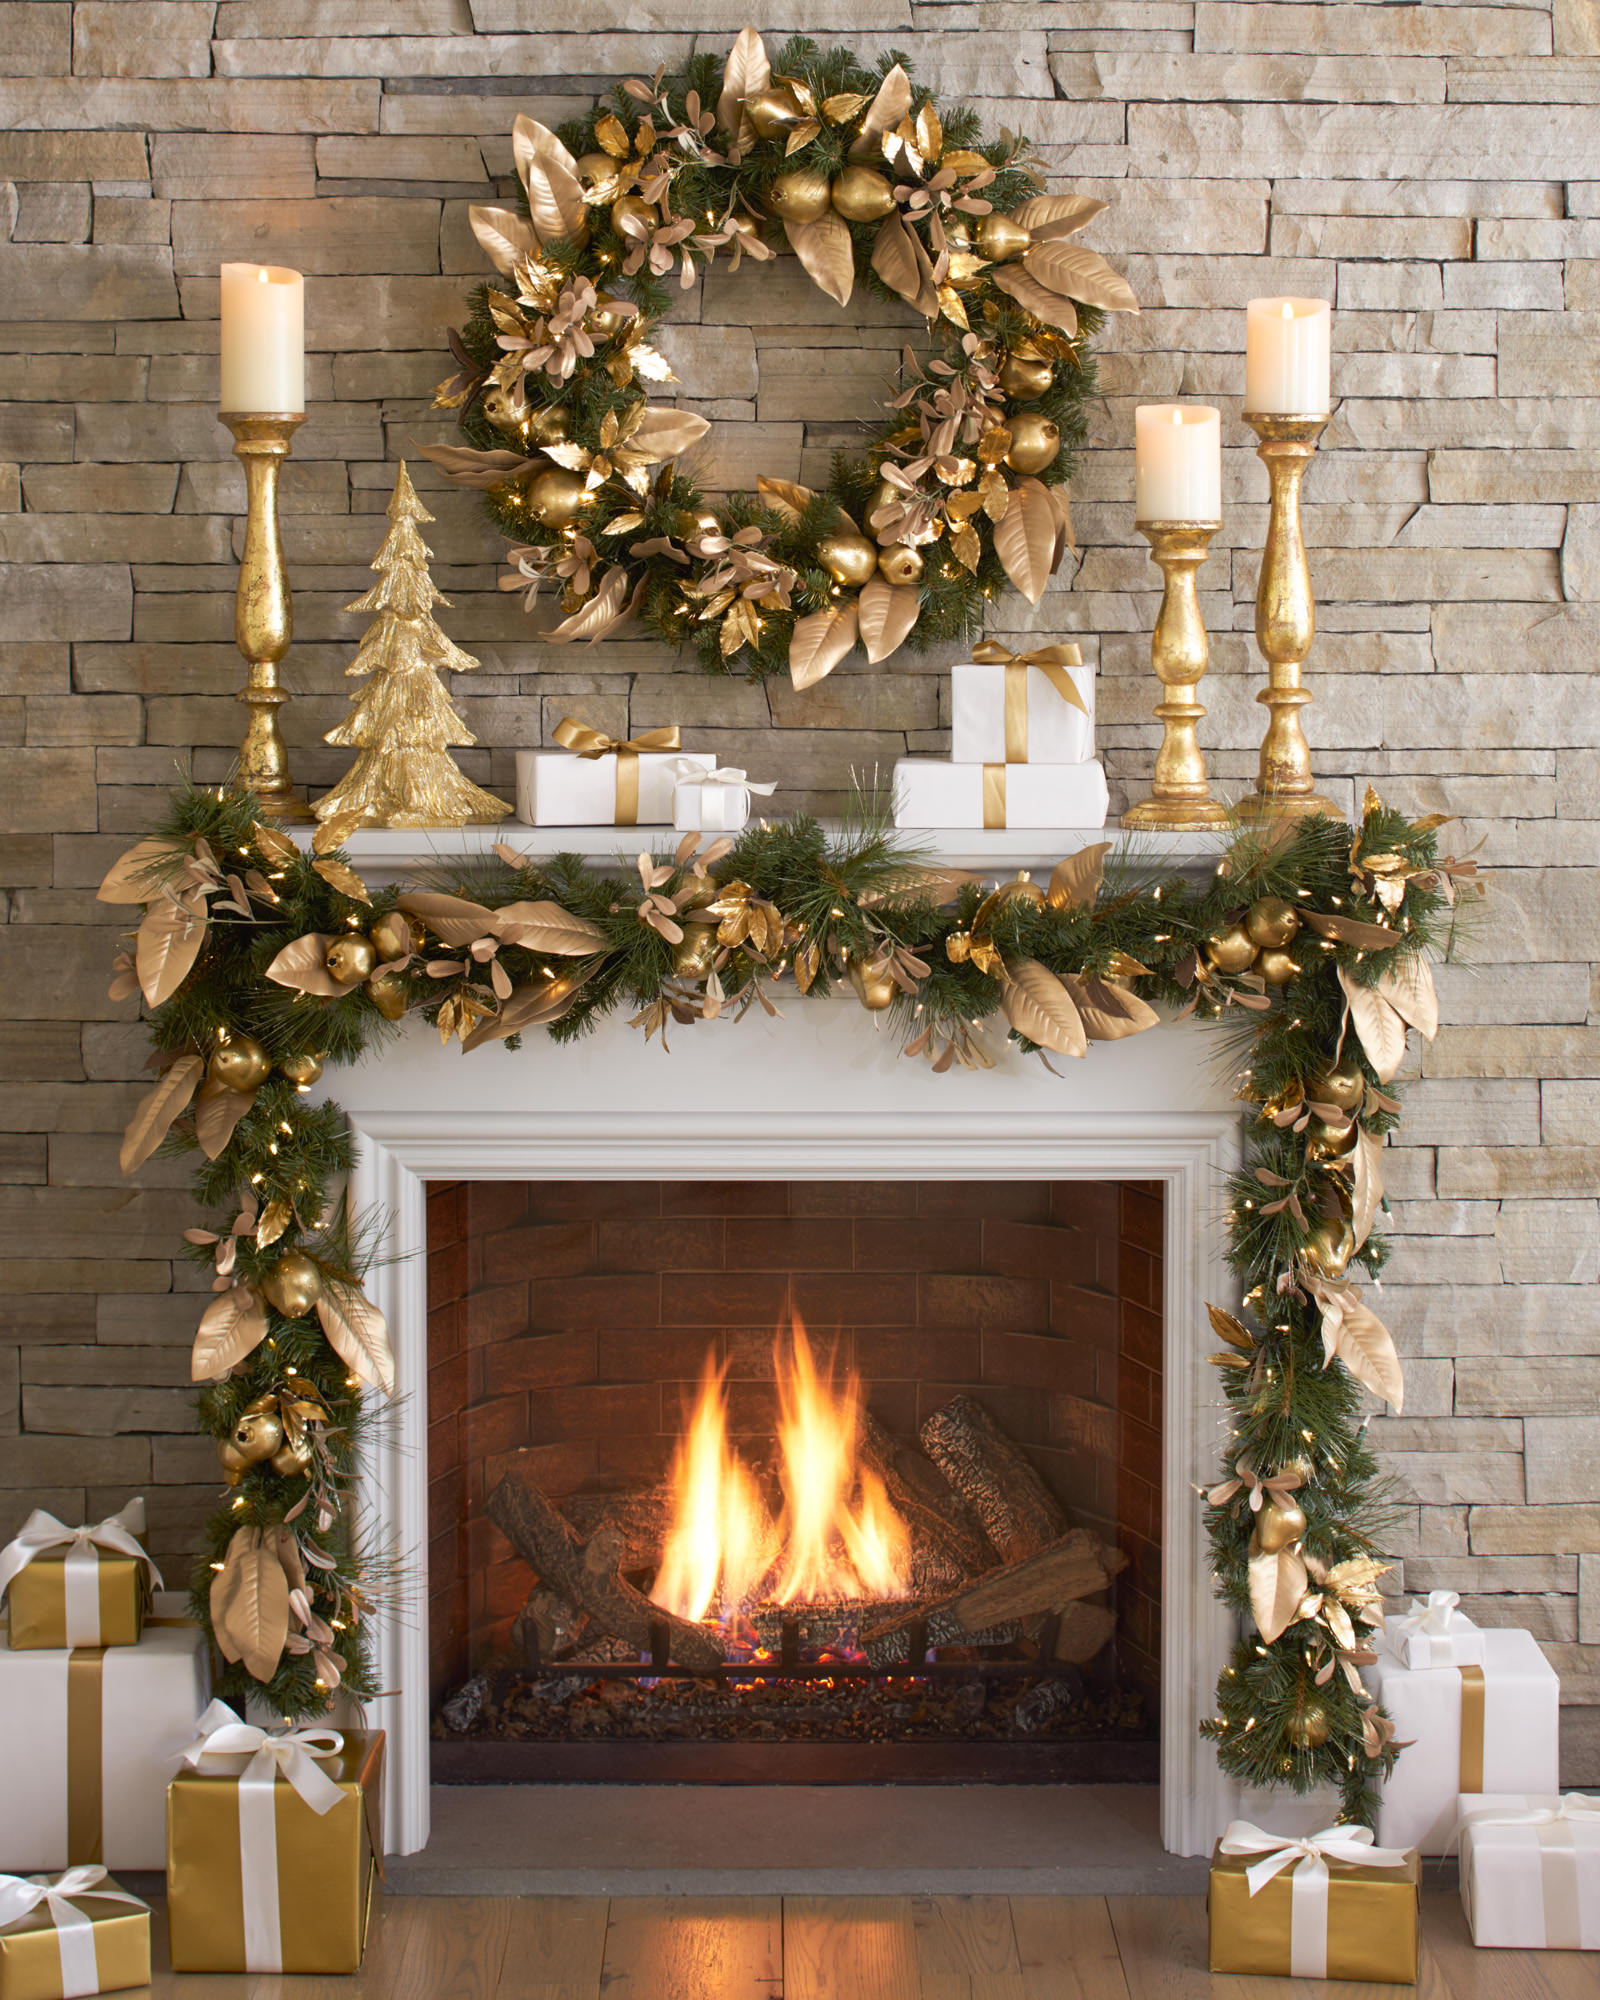 decorate with presents - How To Decorate A Fireplace For Christmas